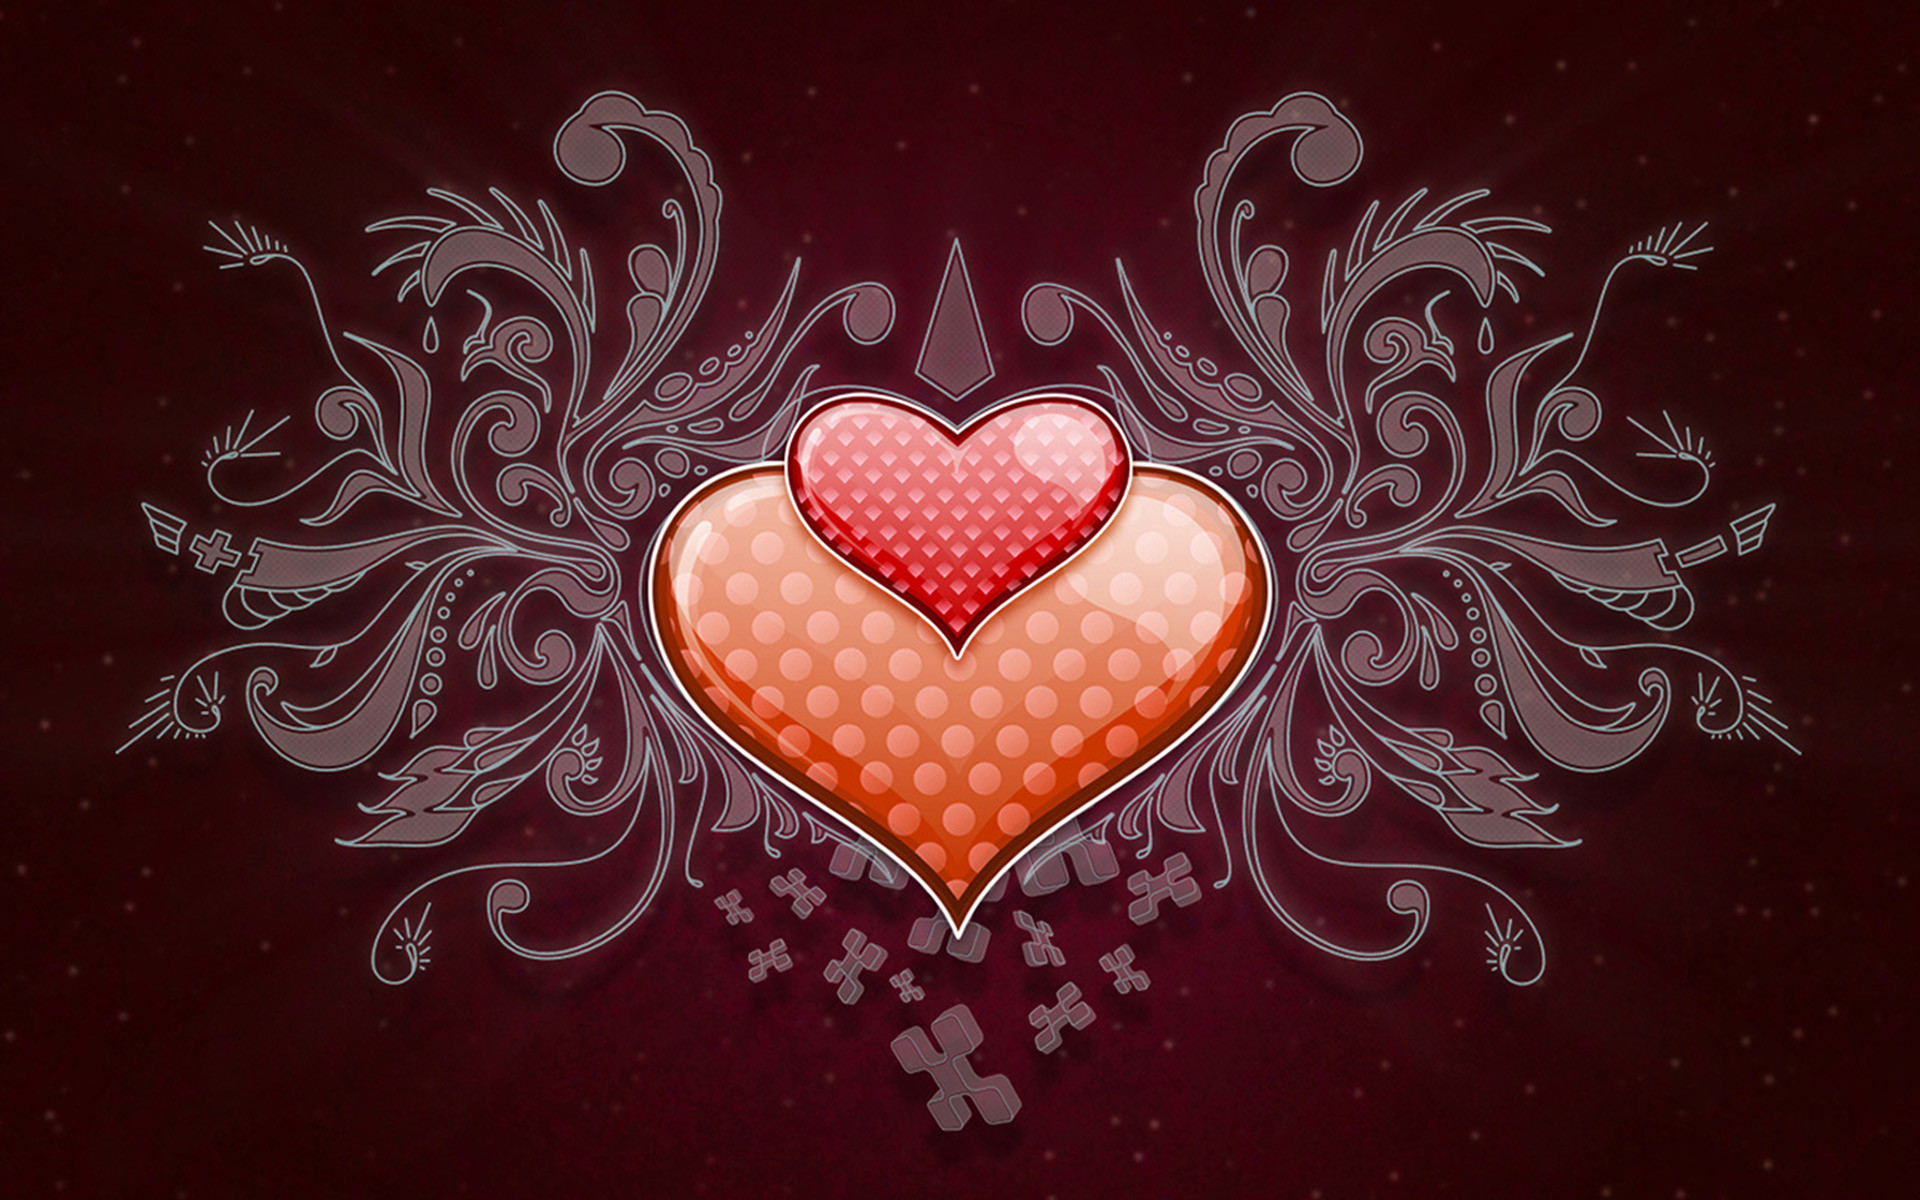 Heart In Love Wallpaper Hd: Love Heart Wallpaper HD ·① WallpaperTag